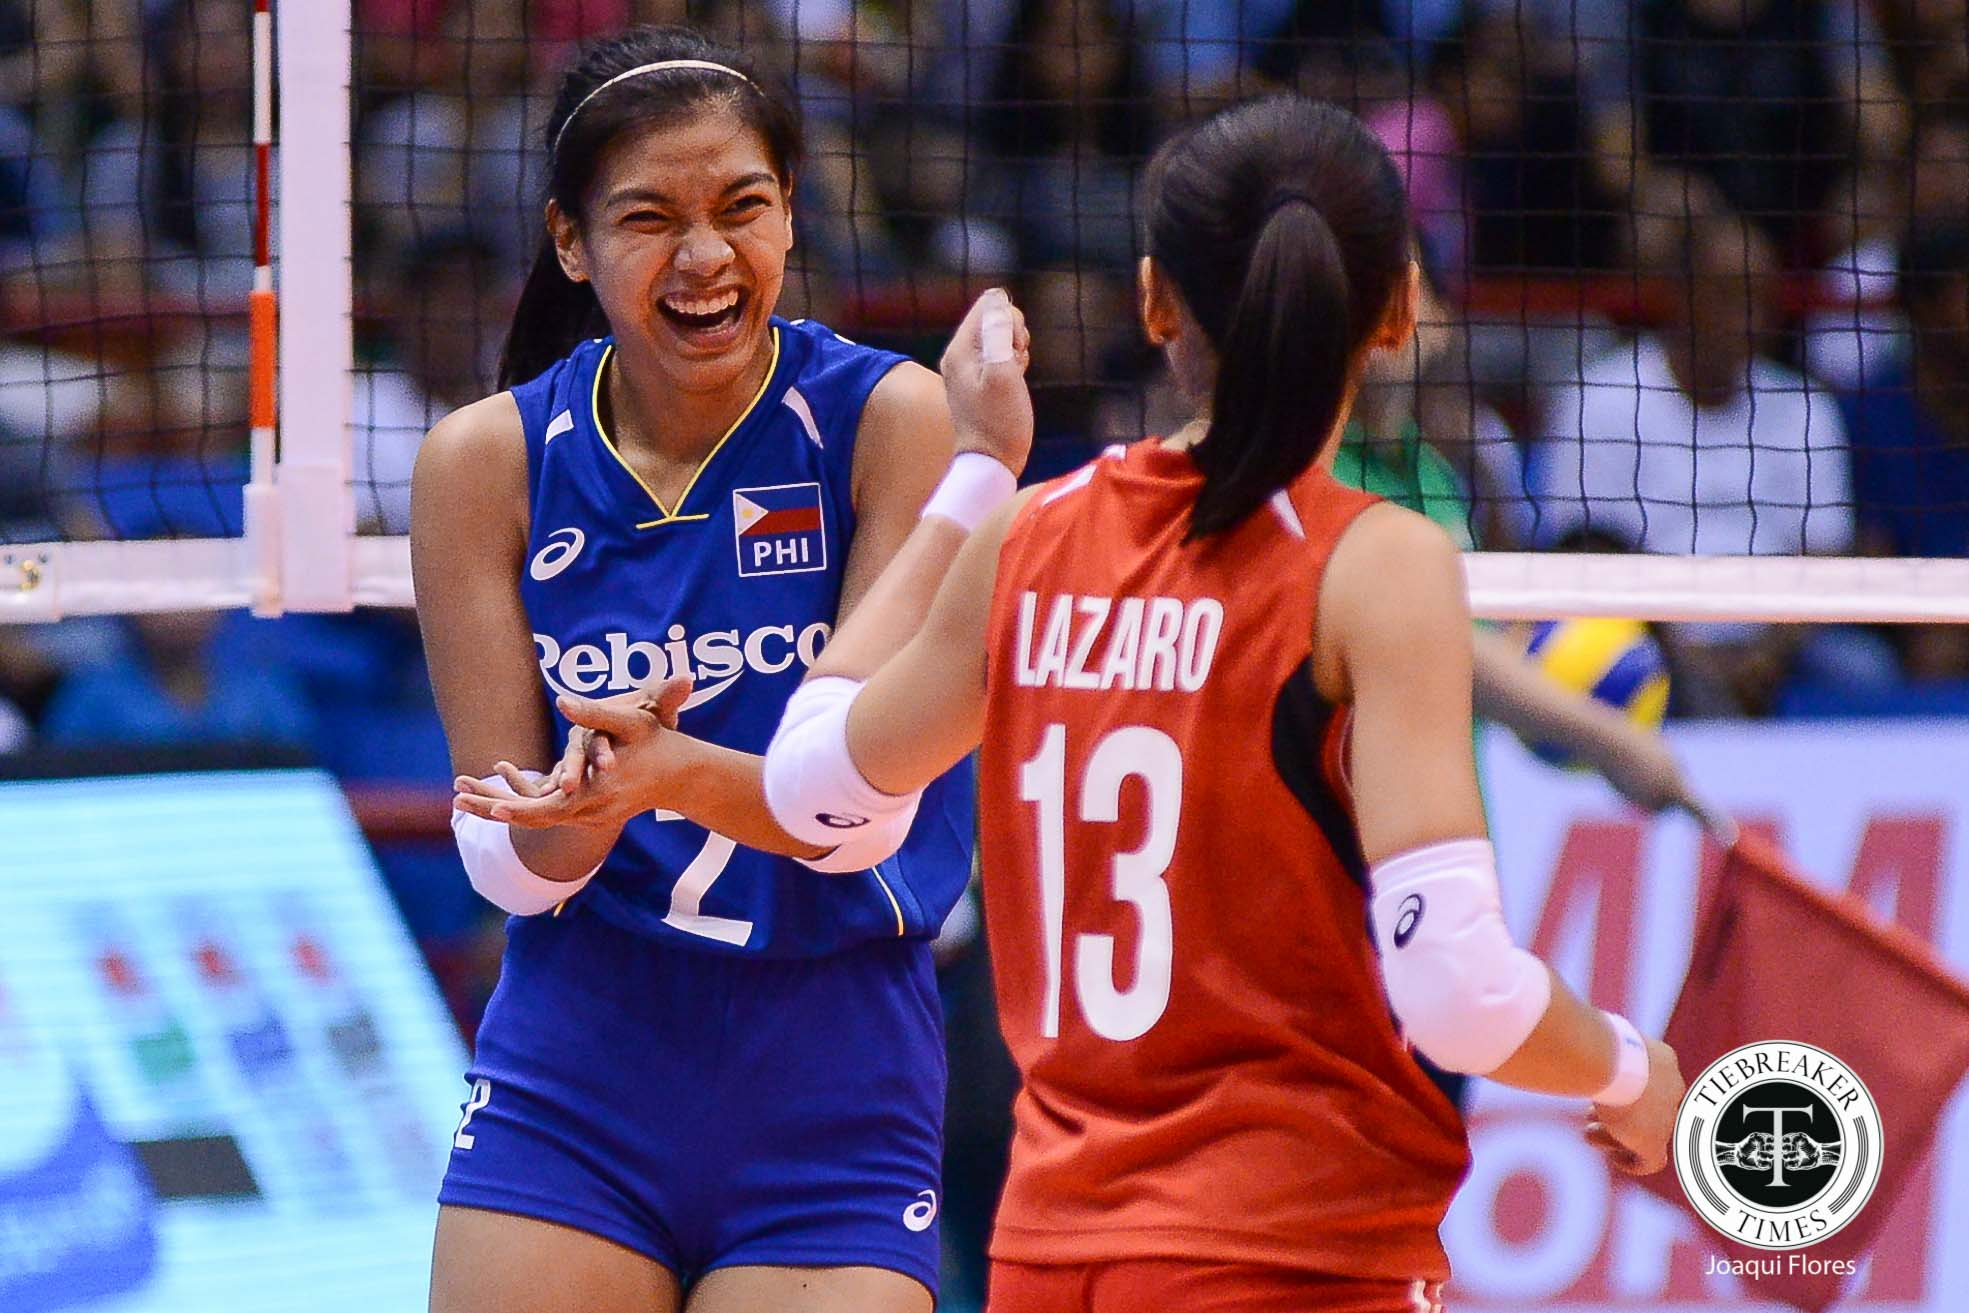 Philippine Sports News - Tiebreaker Times Mixed emotions for Alyssa Valdez as she starts Taiwan stint News Volleyball  Attack Line Alyssa Valdez 2017 Taiwan Volleyball League season